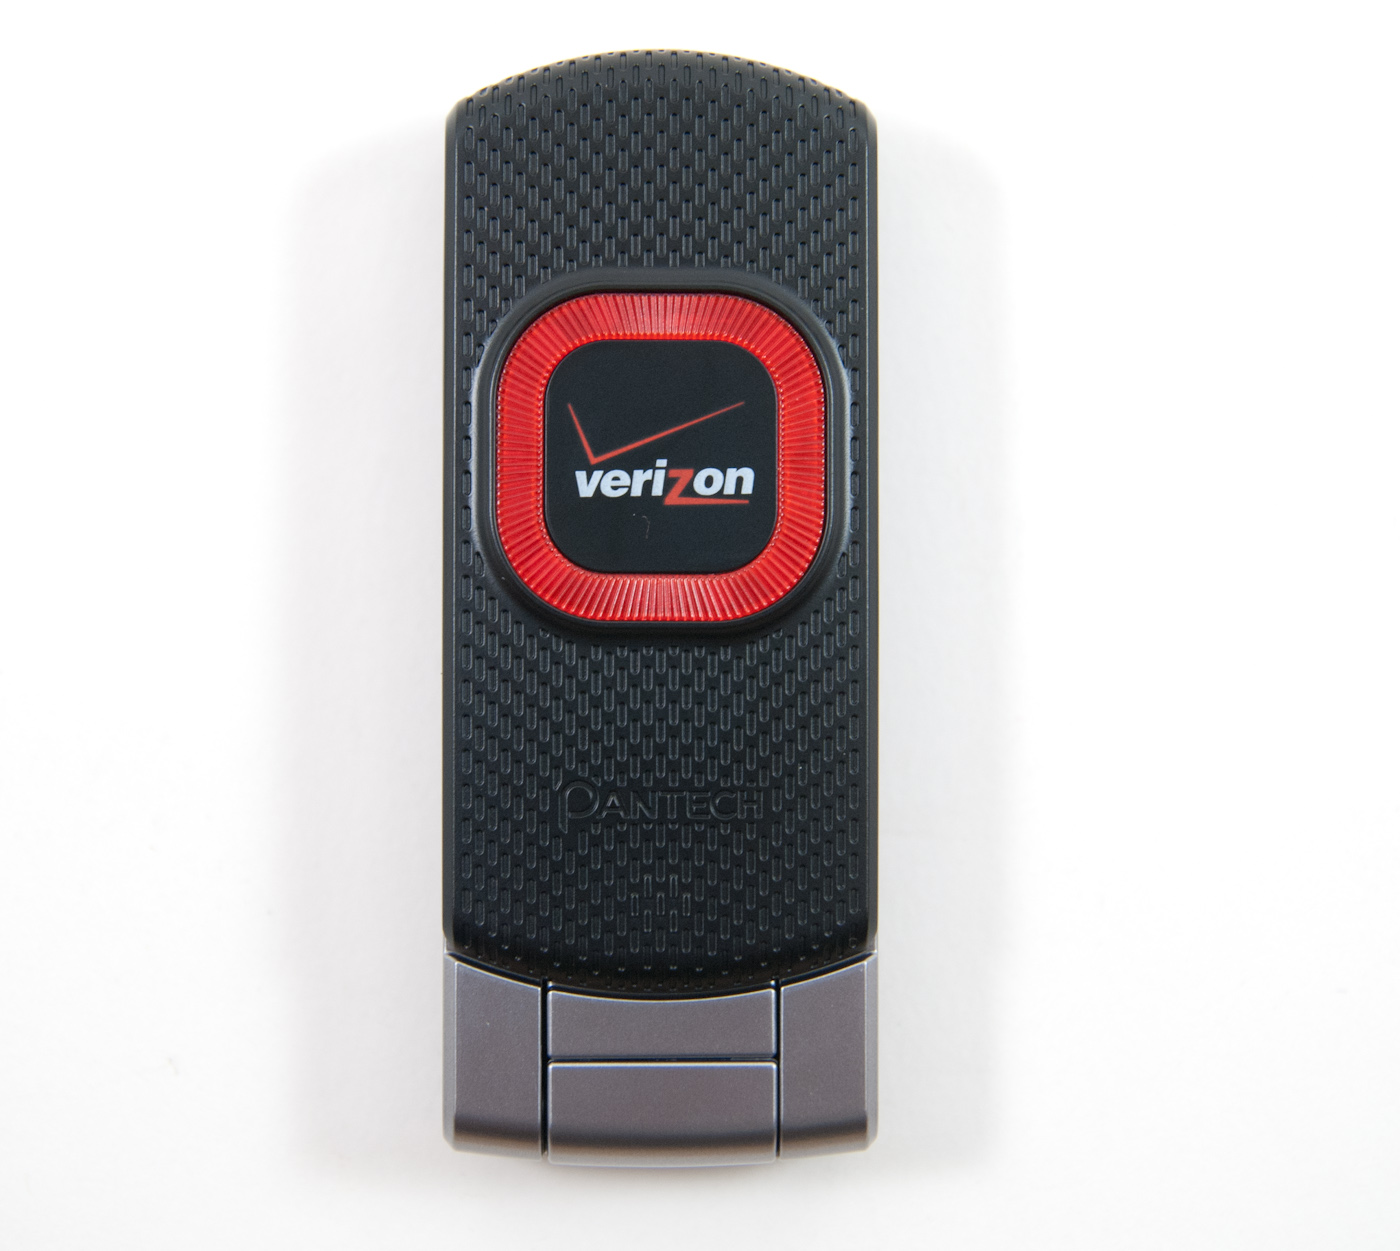 Datacard 1: Pantech UML290 - Verizon 4G LTE: Two Datacards